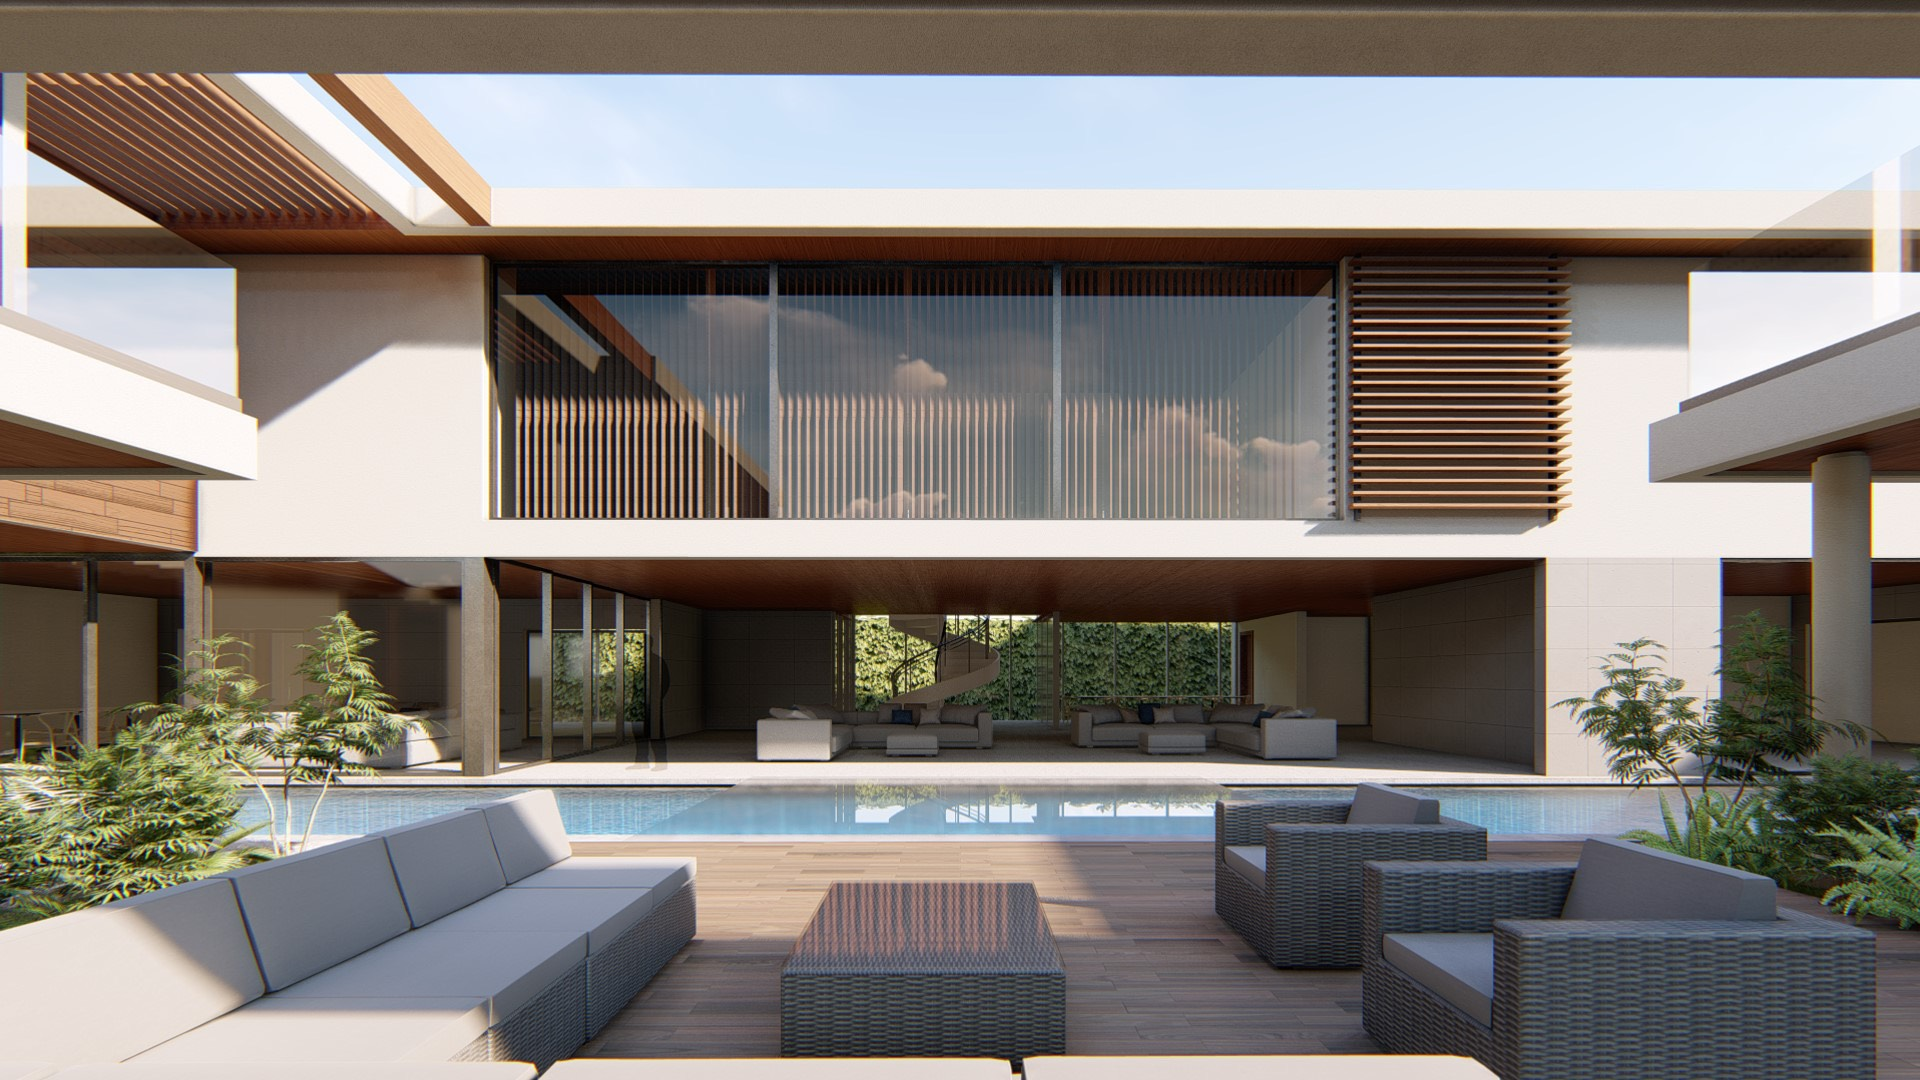 Best On the Board Drawing, Pool, Exterior design, Asia, Karachi